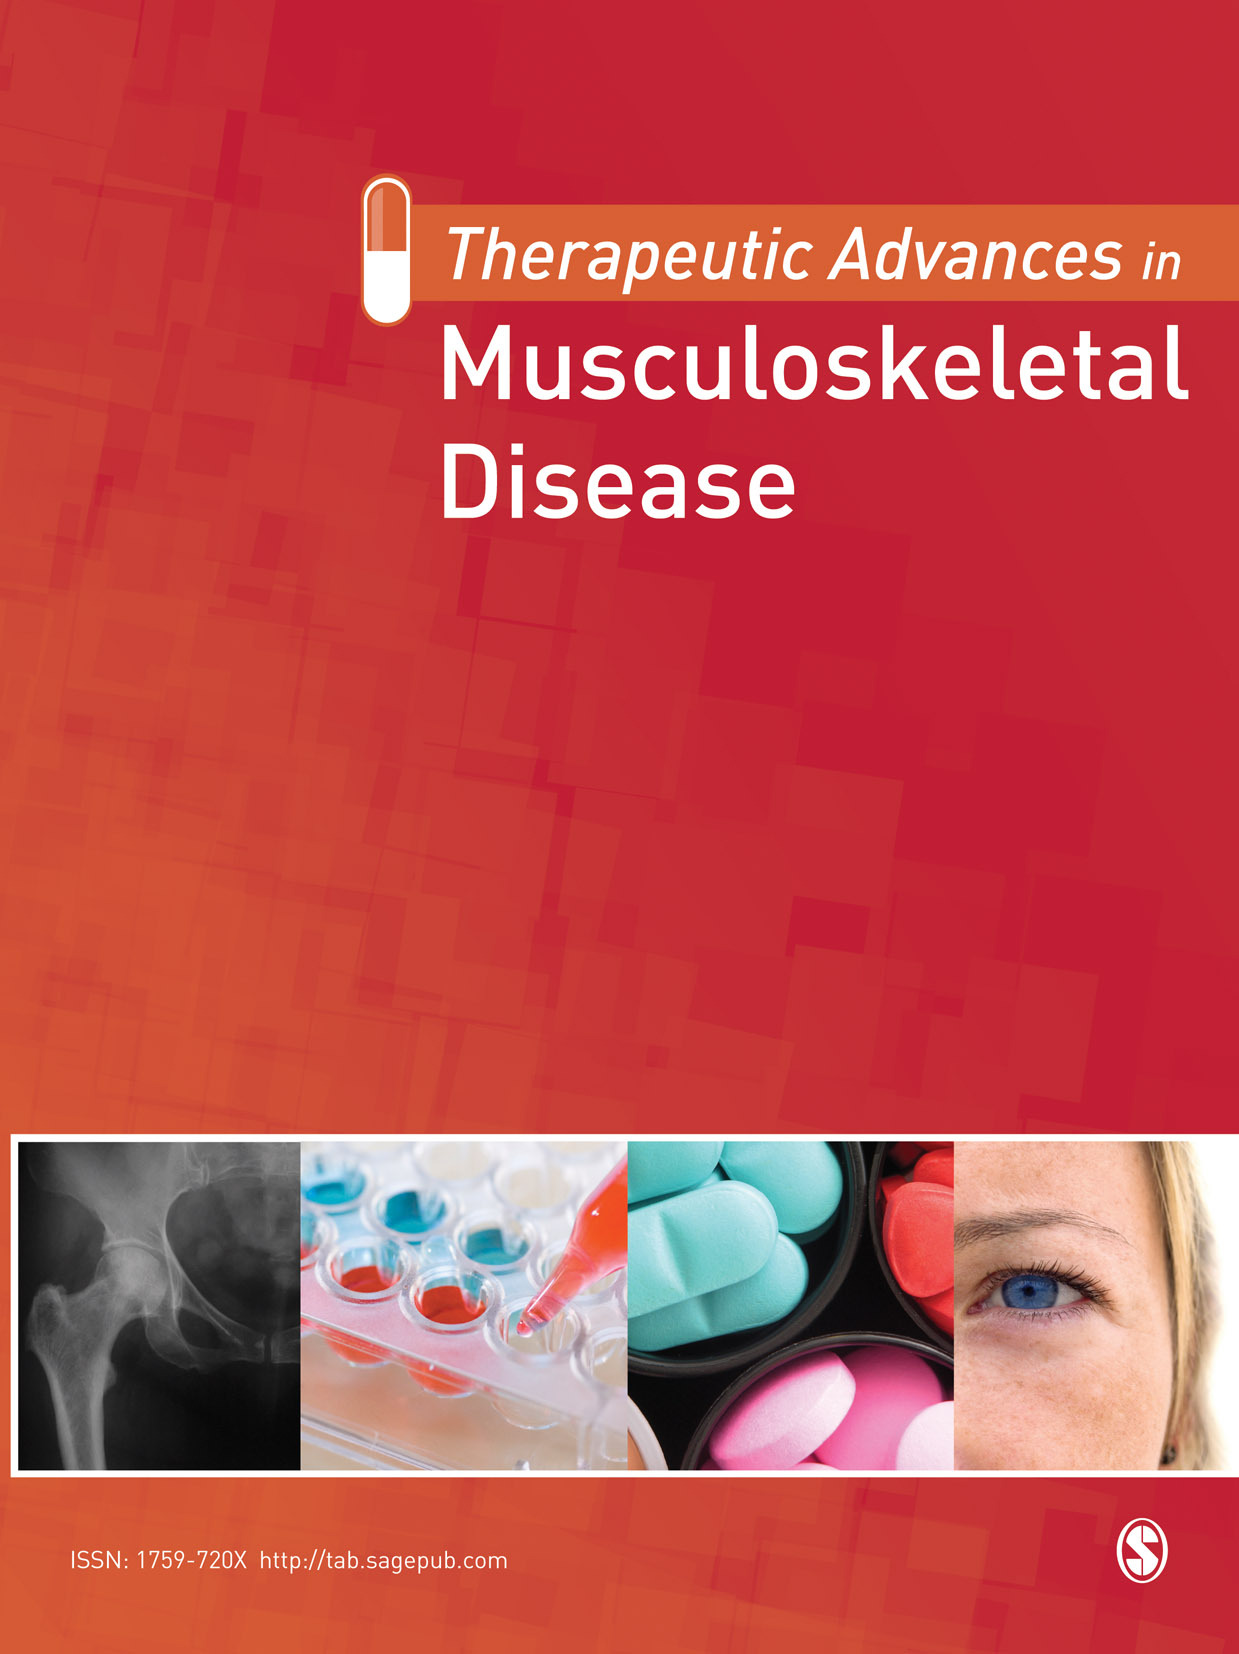 Therapeutic Advances in Musculoskeletal Disease